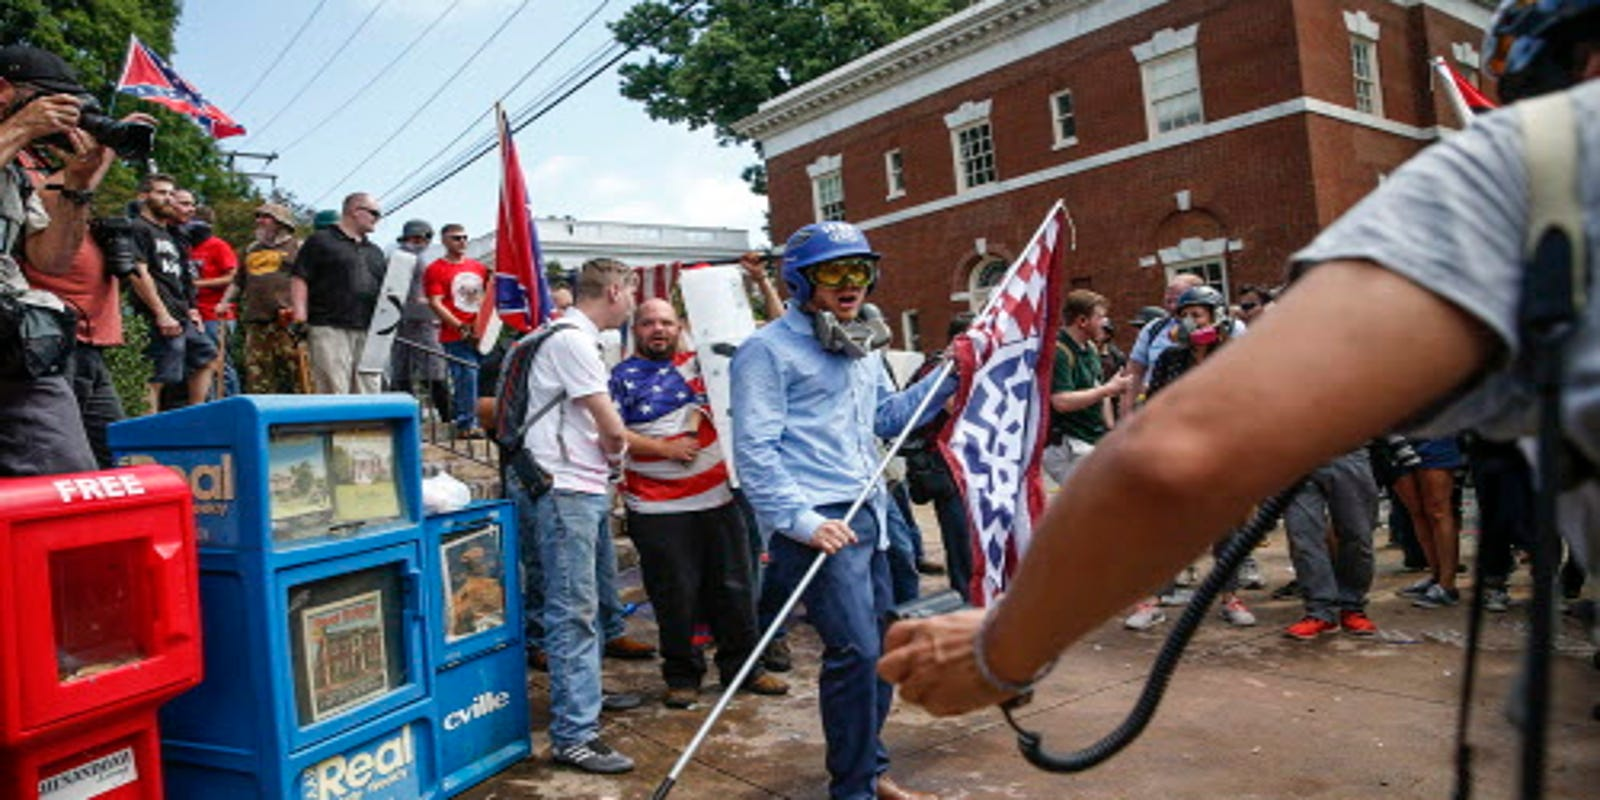 Charlottesville: Swastikas on the rise, but among those who